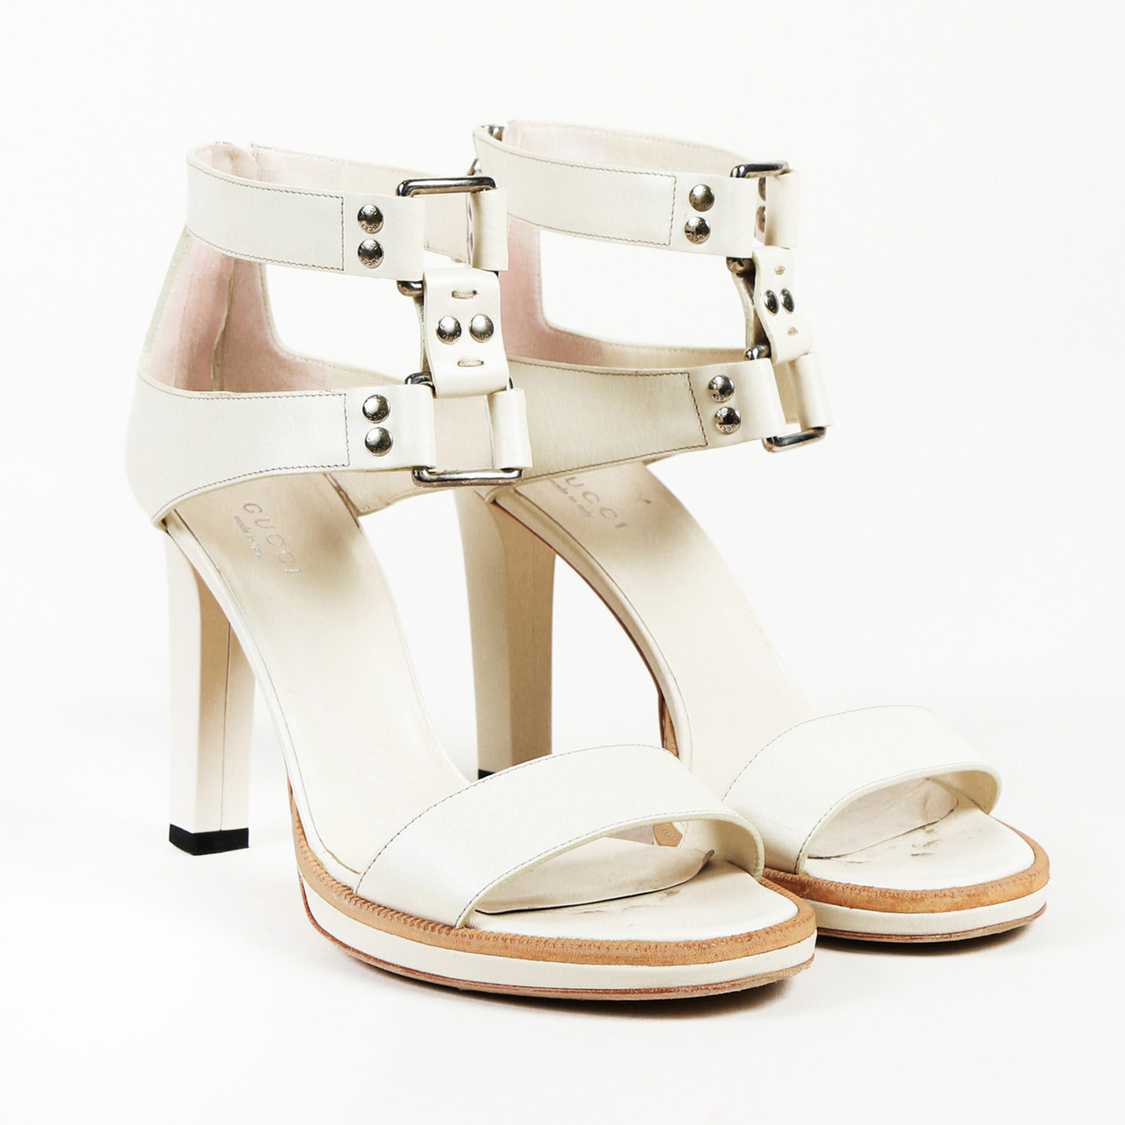 5c23fd32a2a Gucci Studded Leather Ankle Strap Sandals SZ 38.5